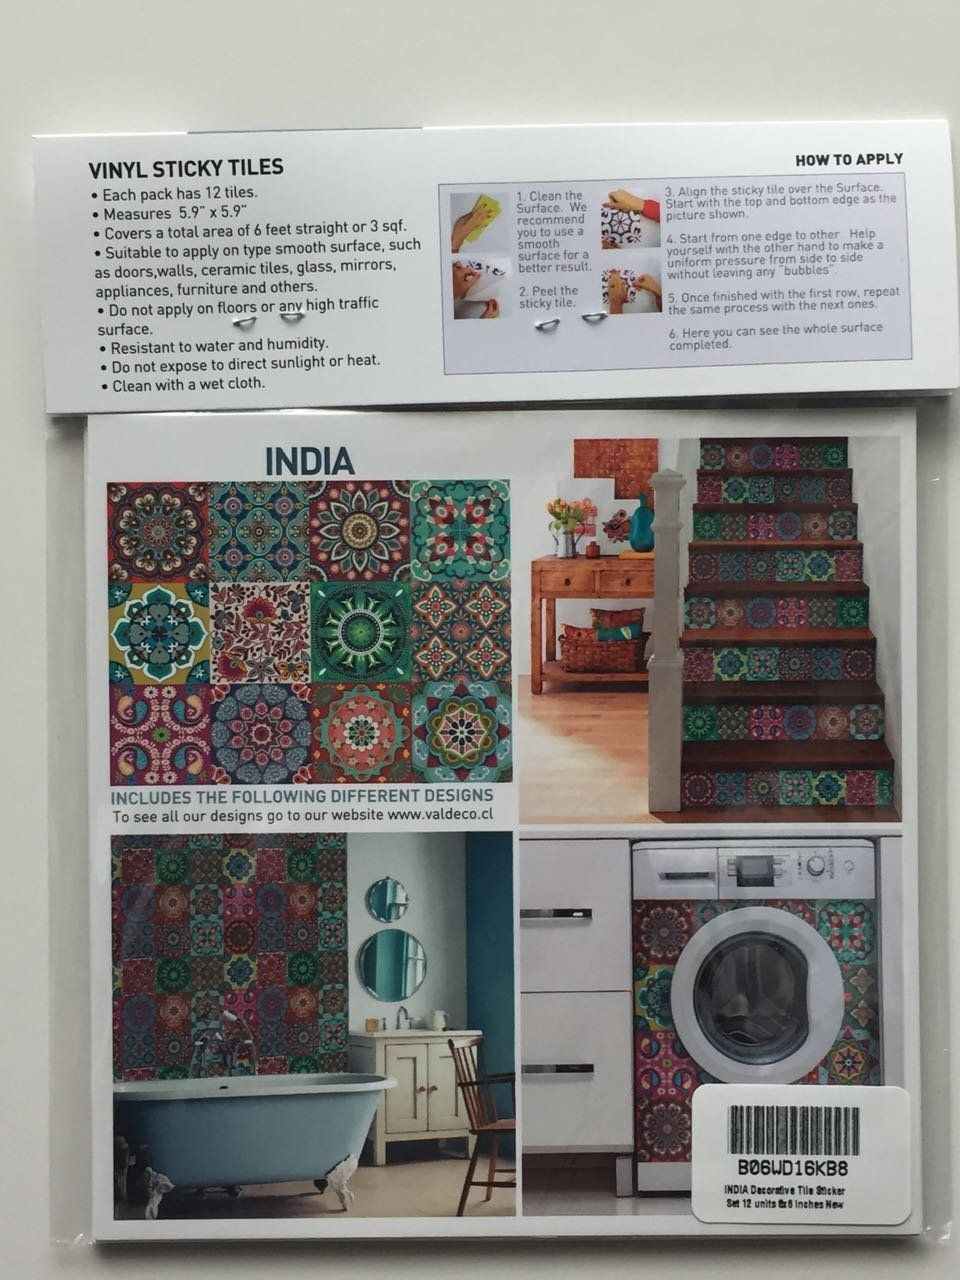 amazon com india decorative tile stickers set 12 units 6x6 inches